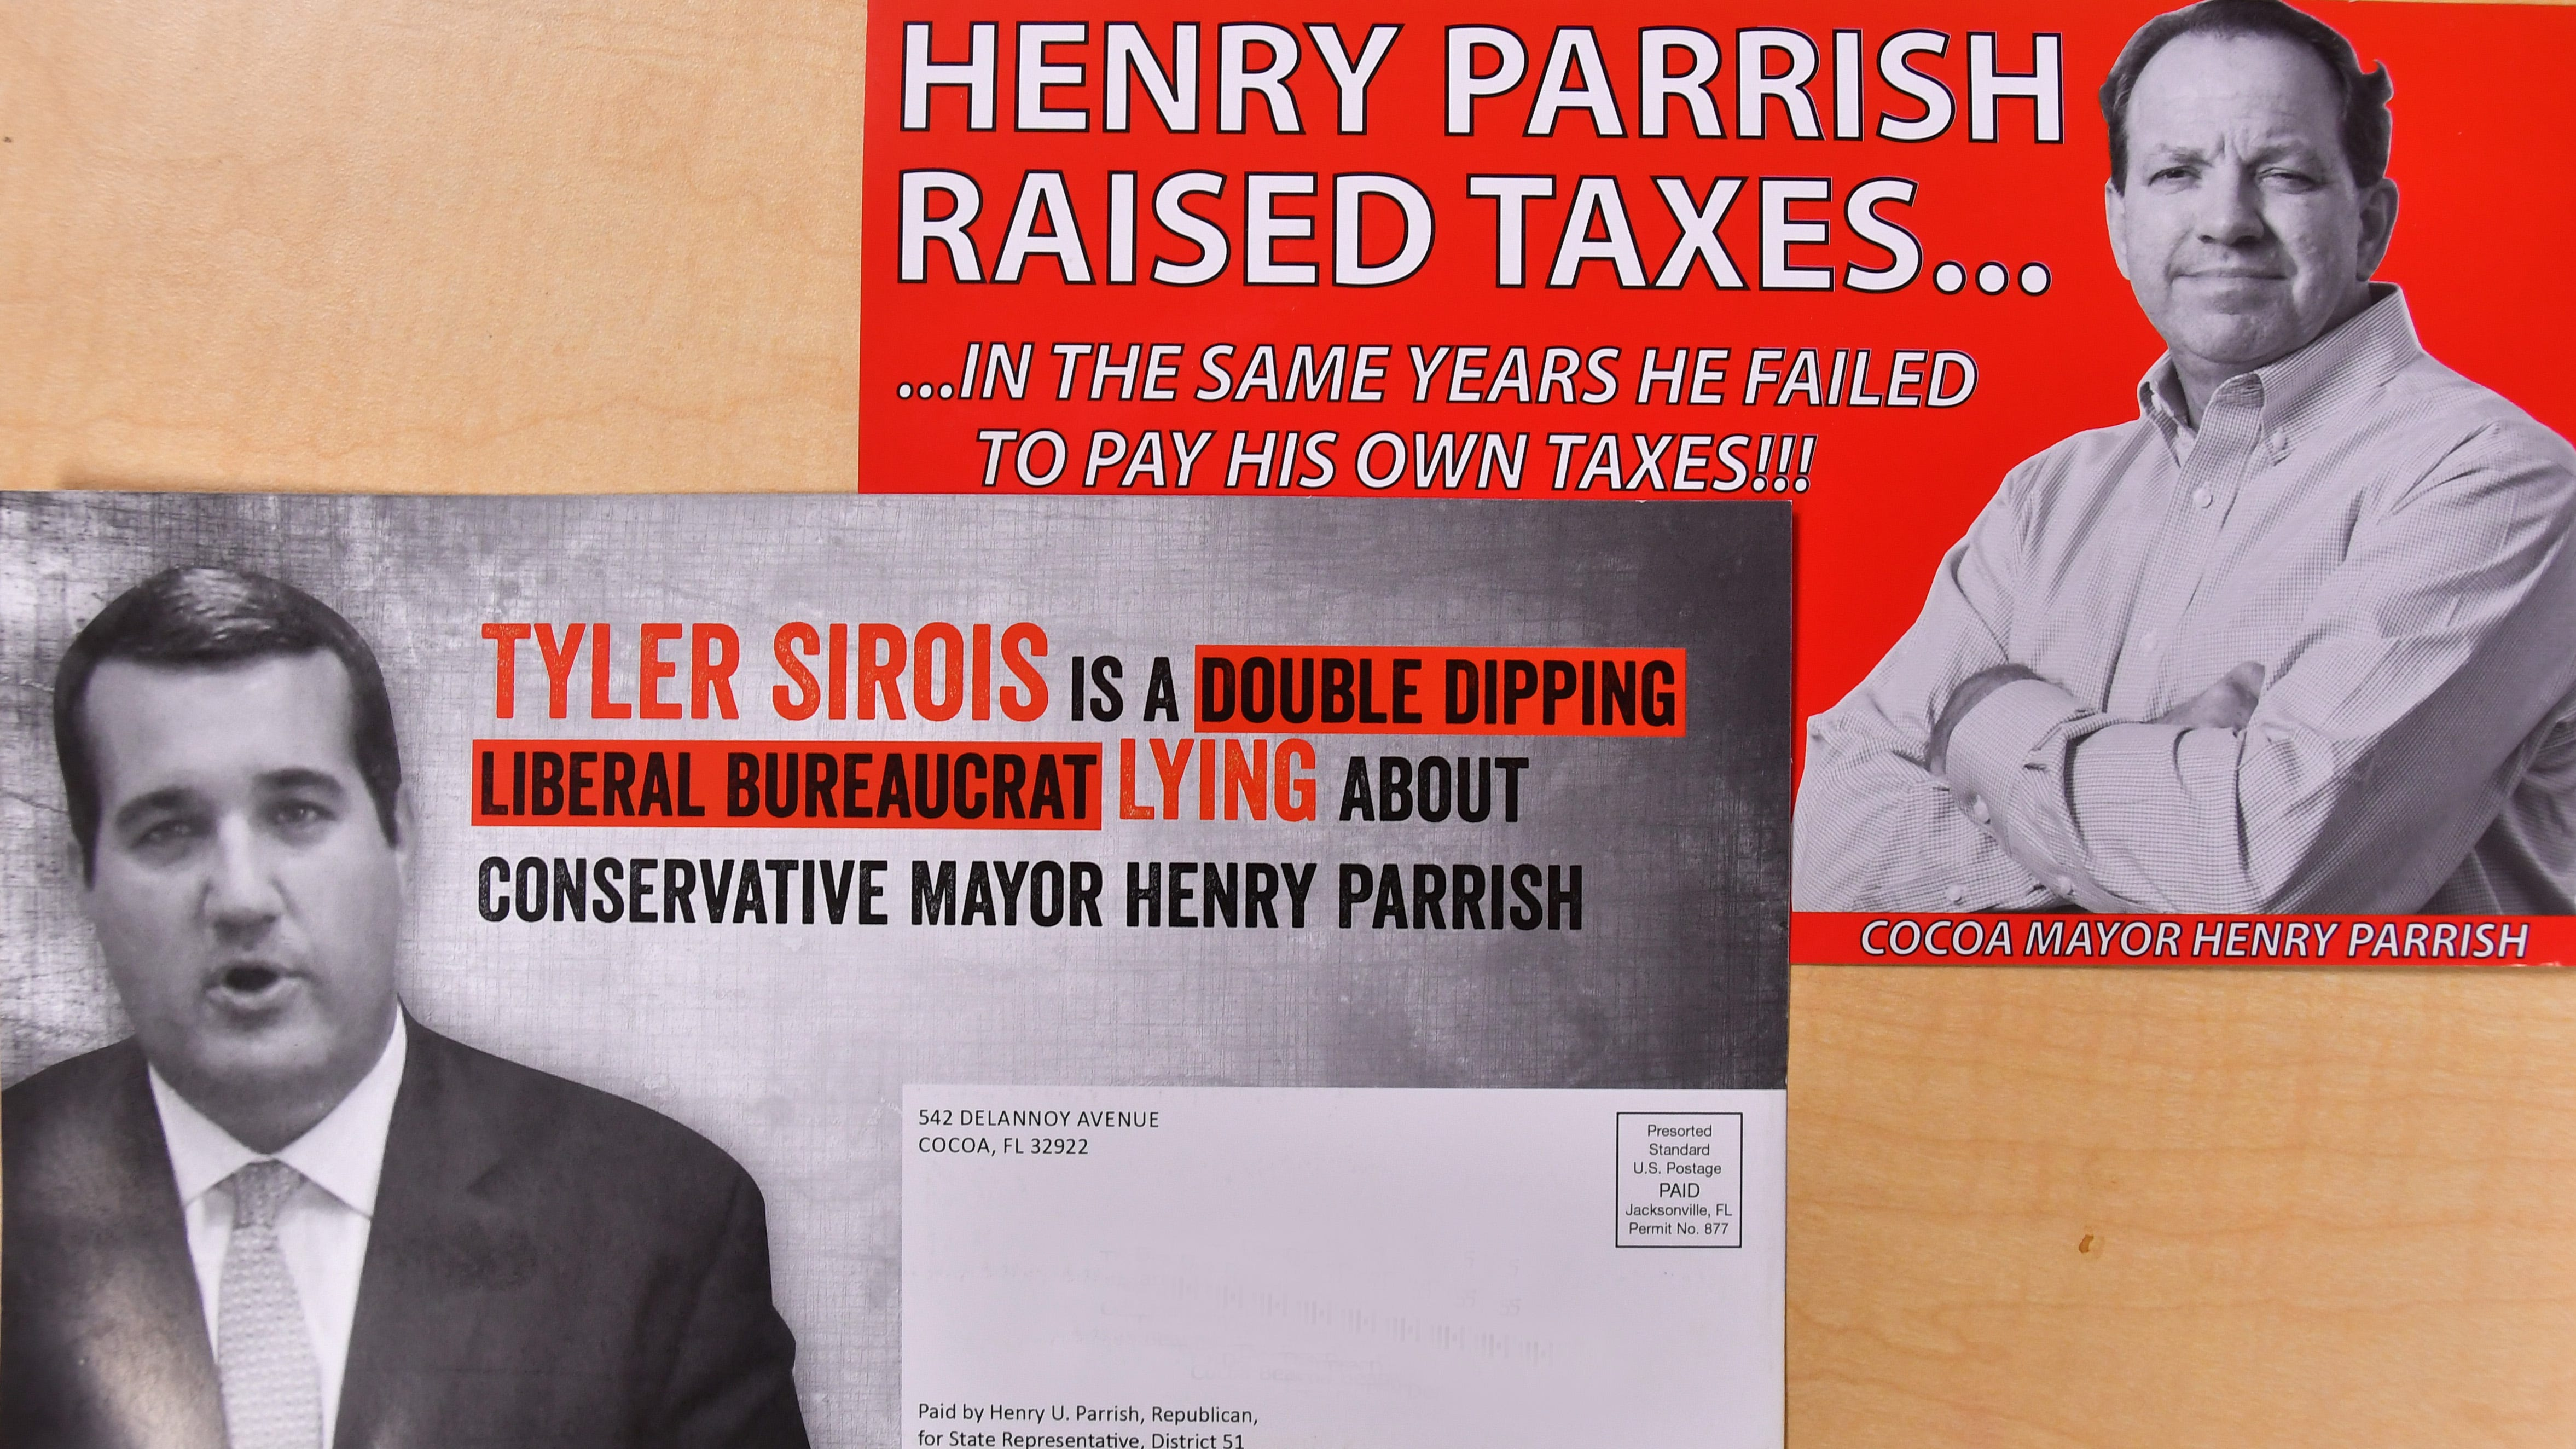 Candidate Parrish owes $20,723 in back property taxes, which becomes issue in GOP primary for House District 51 seat